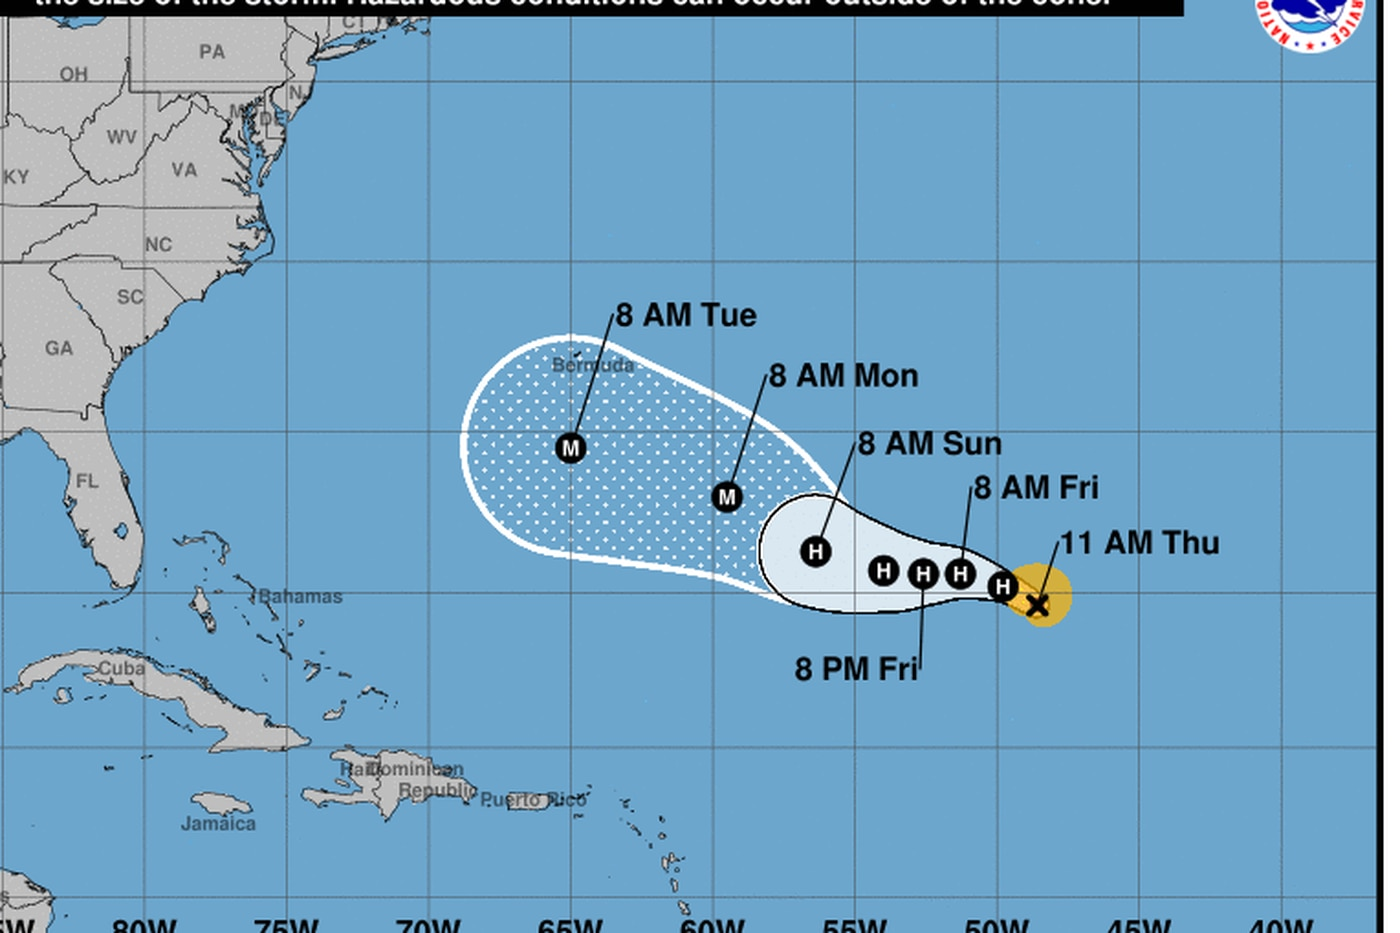 Florence expected to become major hurricane, risk to East Coast increasing